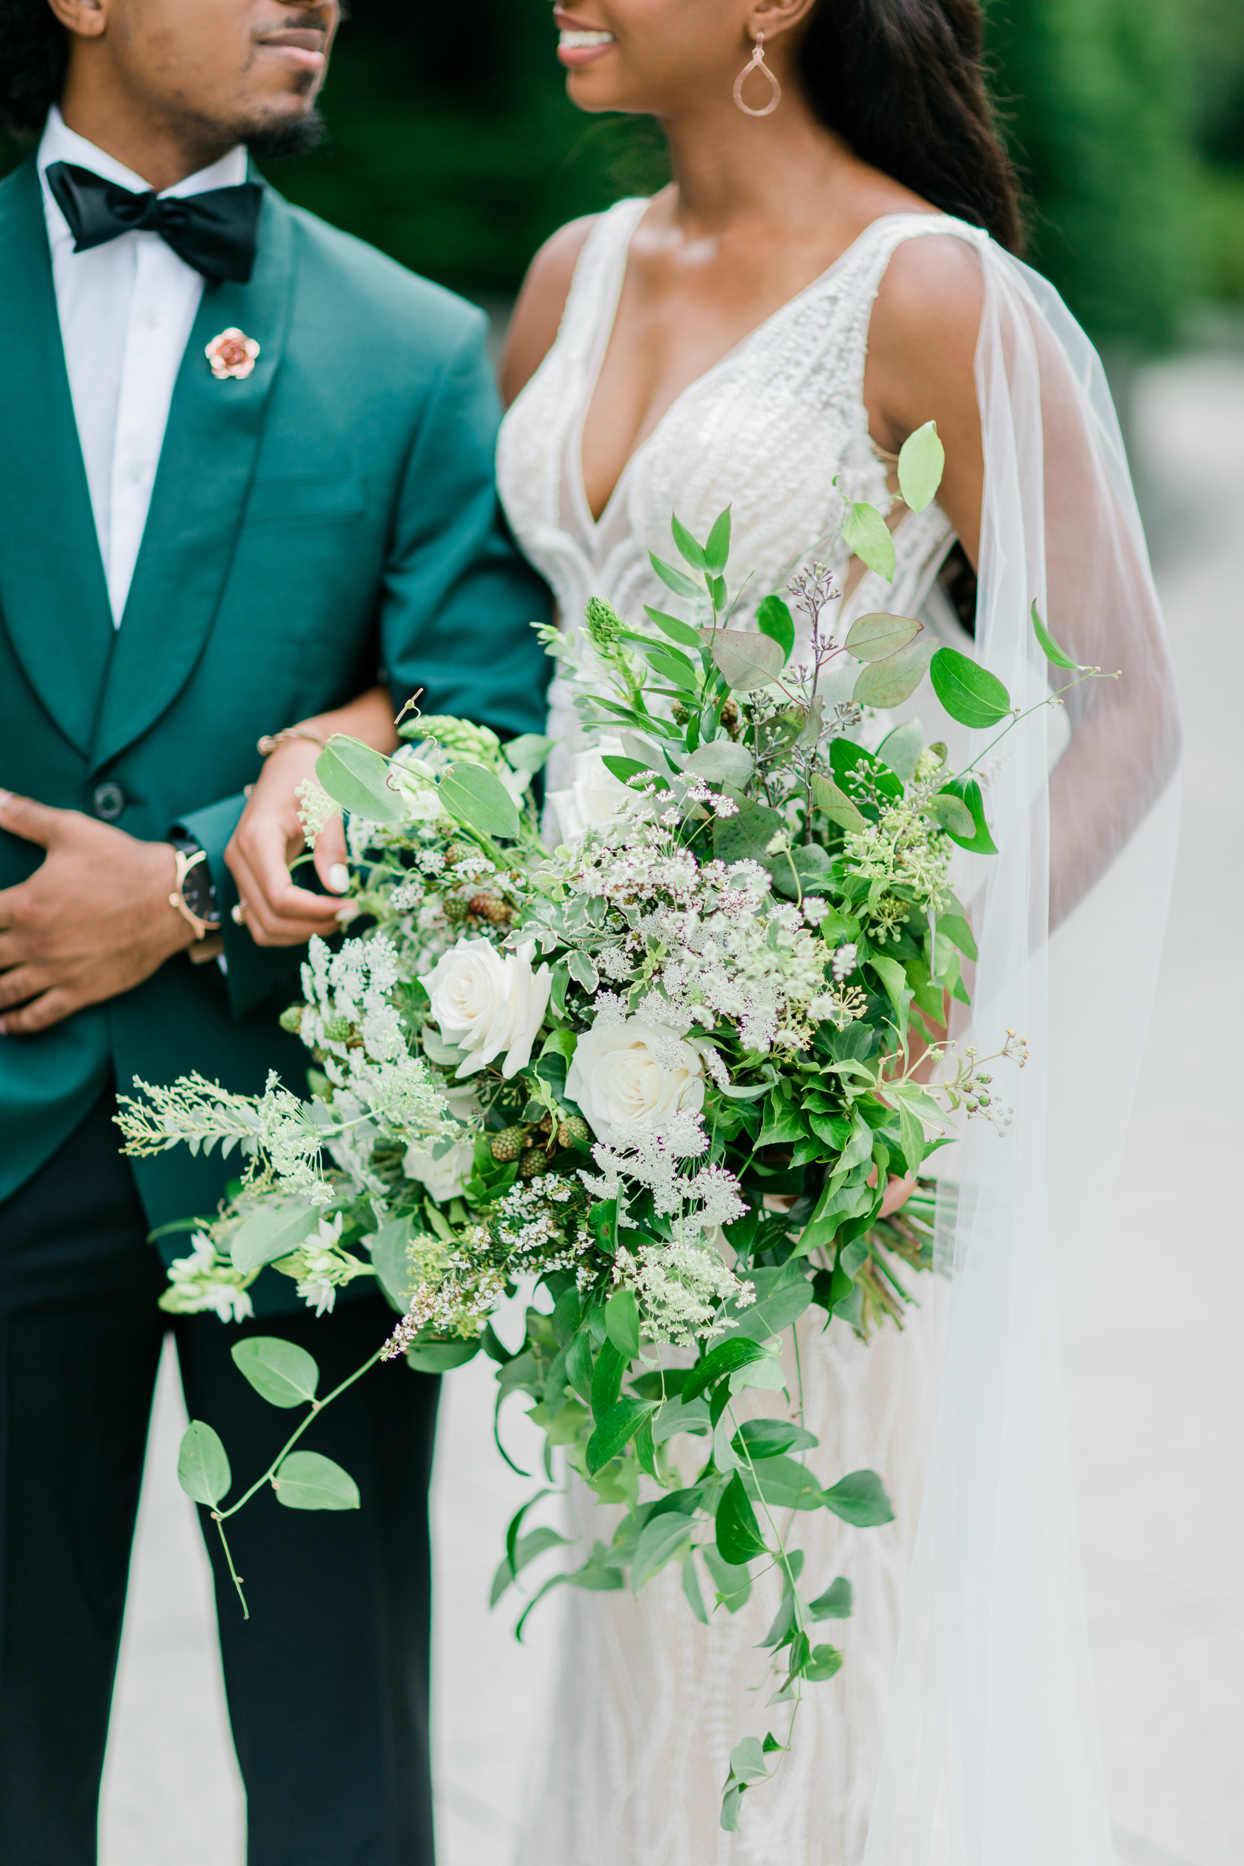 bridal bouquet of greenery and white roses